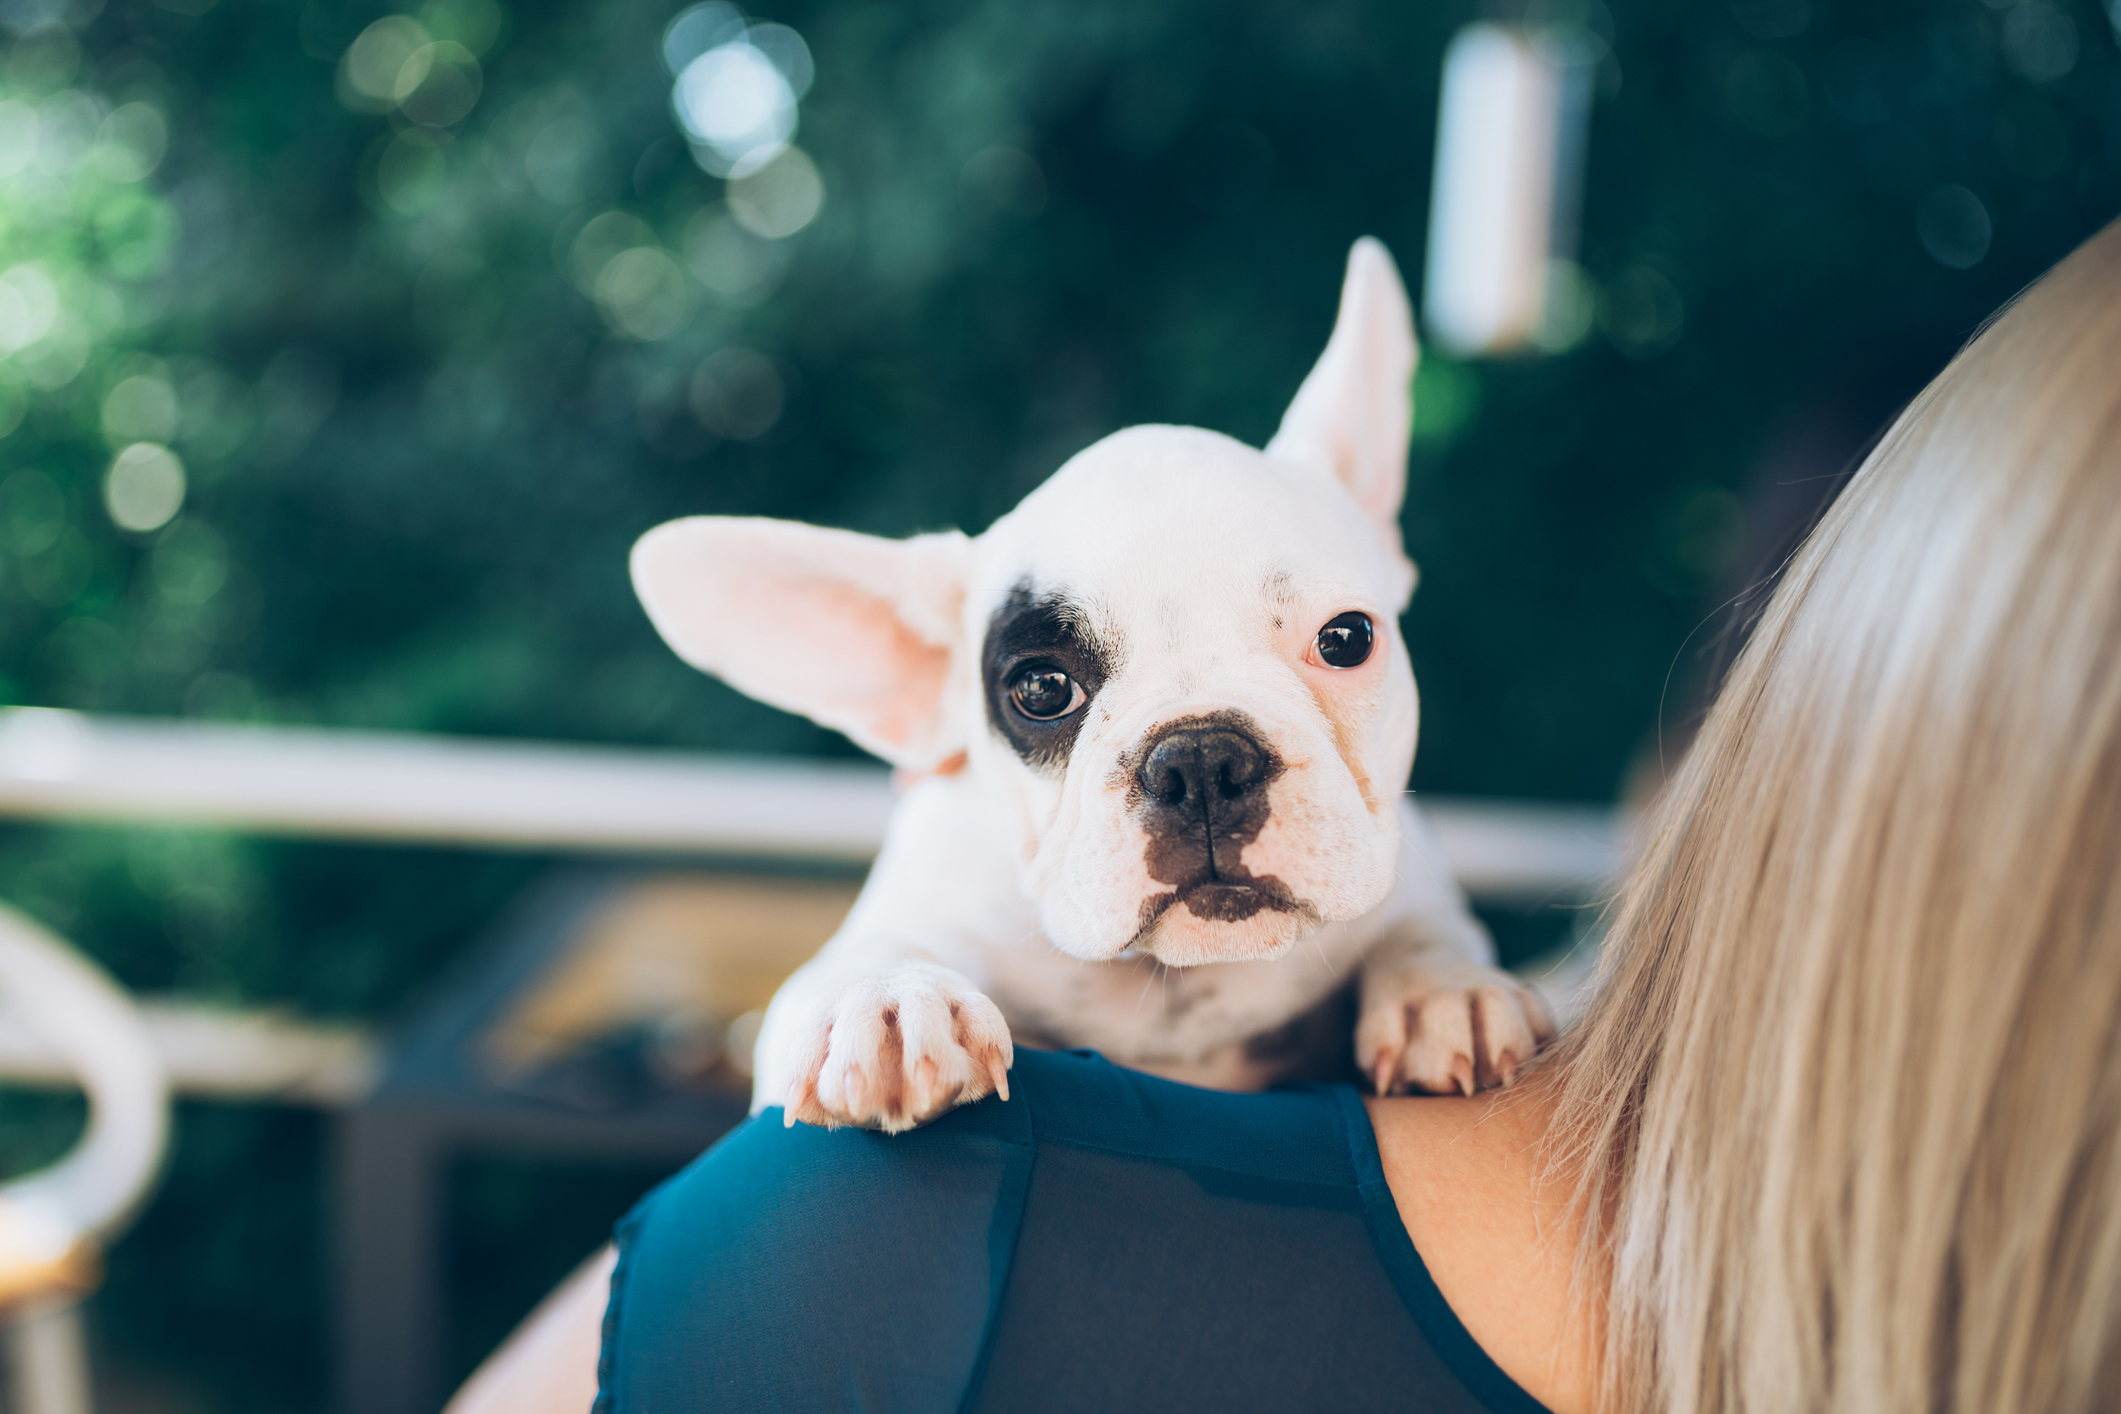 Young blond girl holding adorable French bulldog puppy.